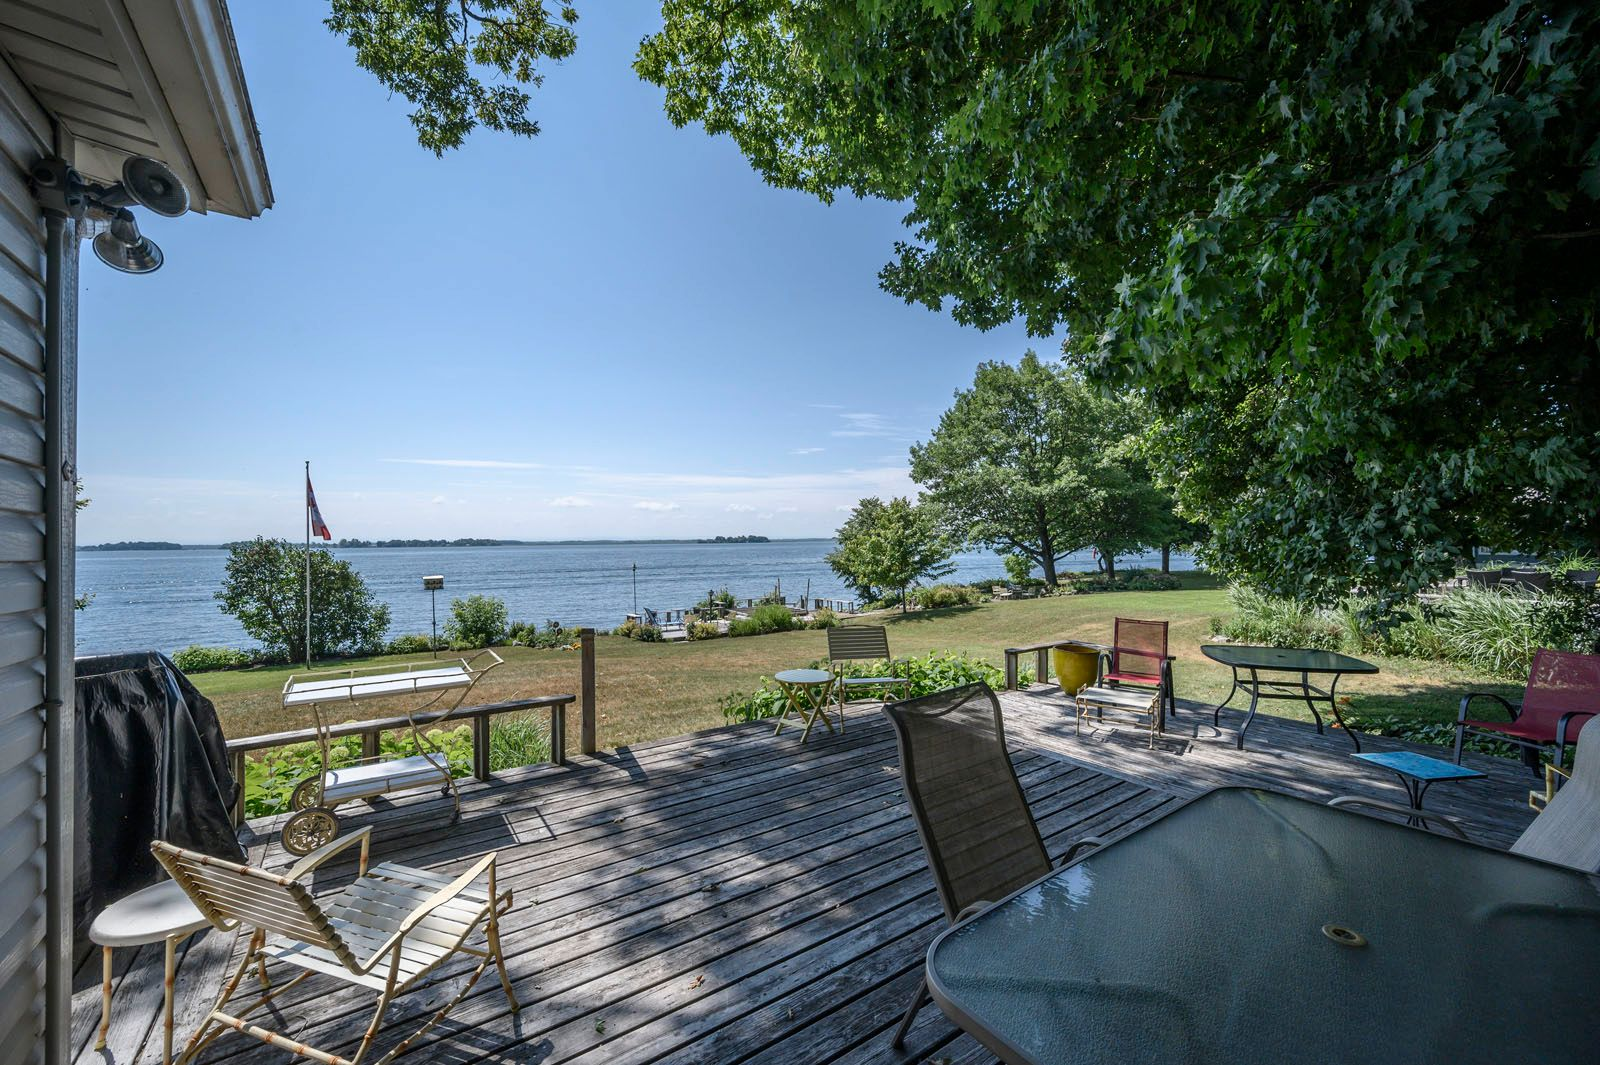 Photo 2: Photos: 54 Hamilton Island Road in Summerstown: Summerstown, ON Recreational for sale (St.Lawrence River)